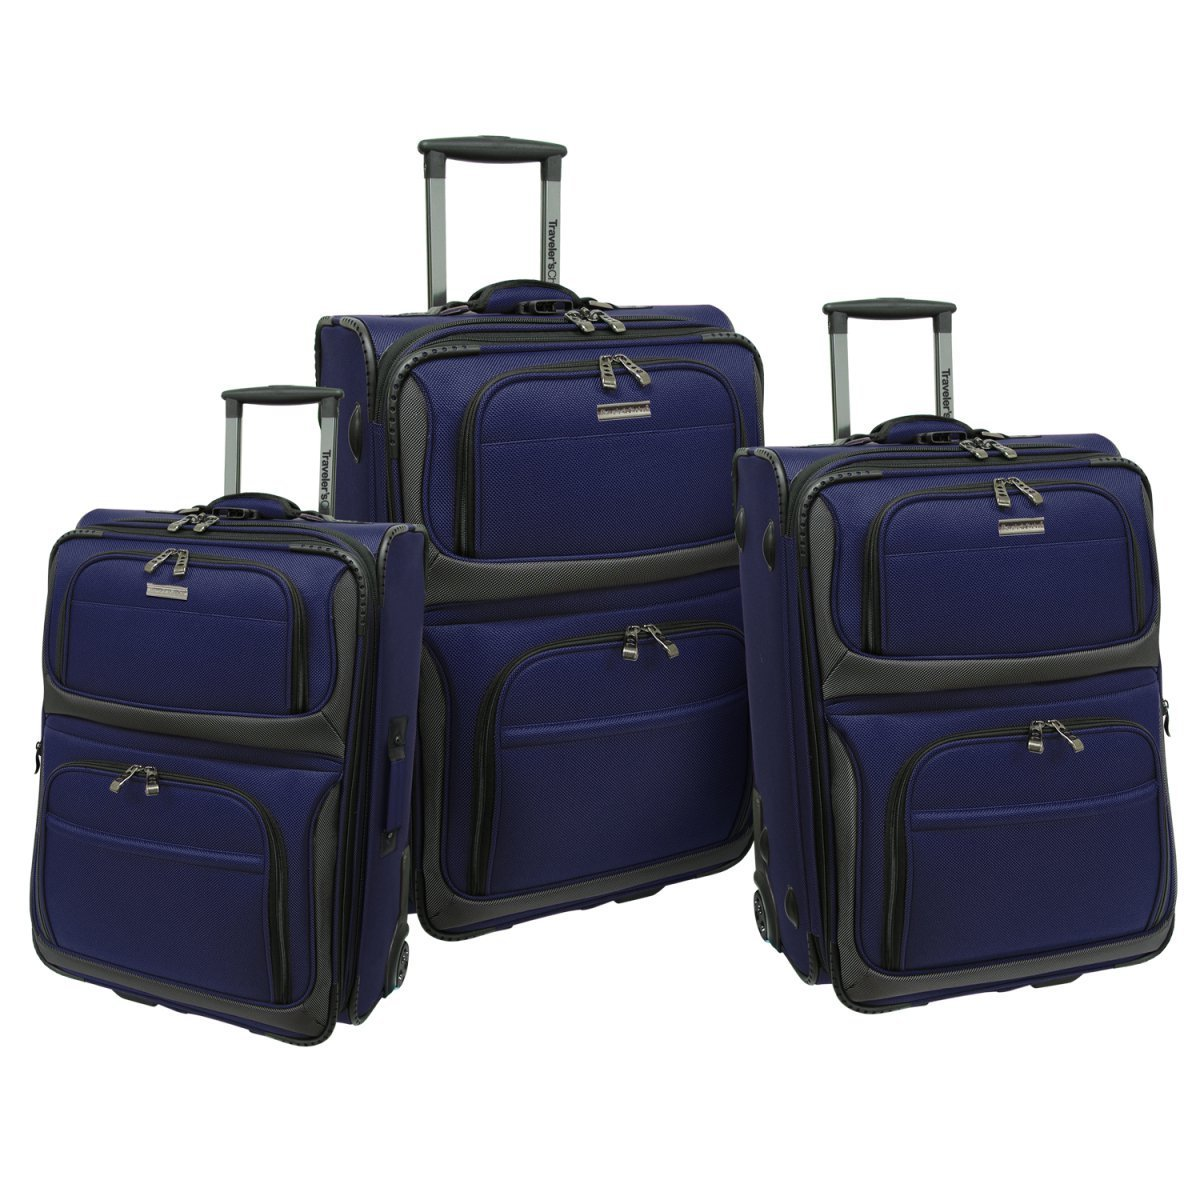 Domestic Missionary Basic Luggage & Travel Package - 1 step mission prep